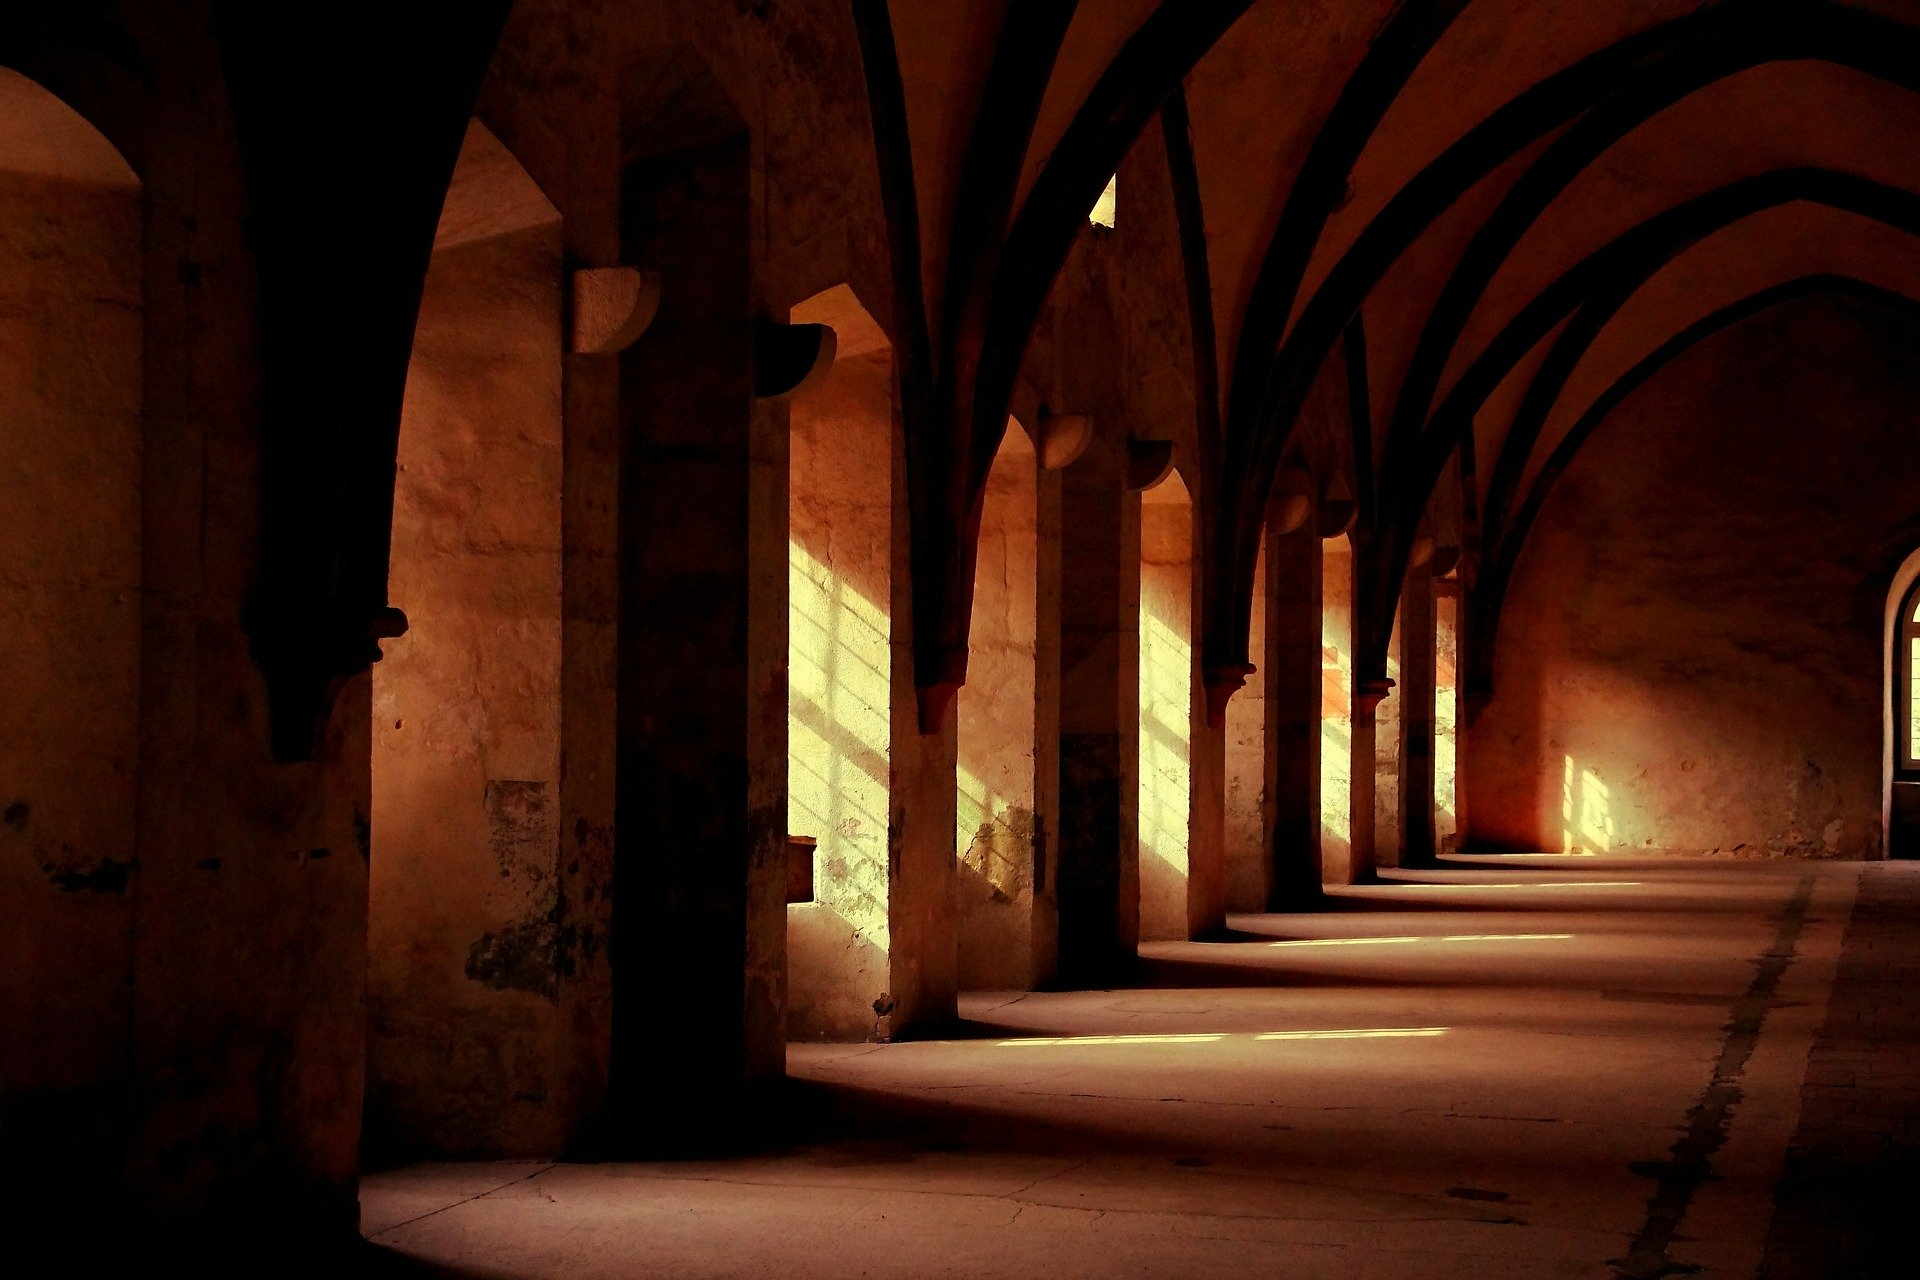 Giant Centipedes and Hallowed Halls